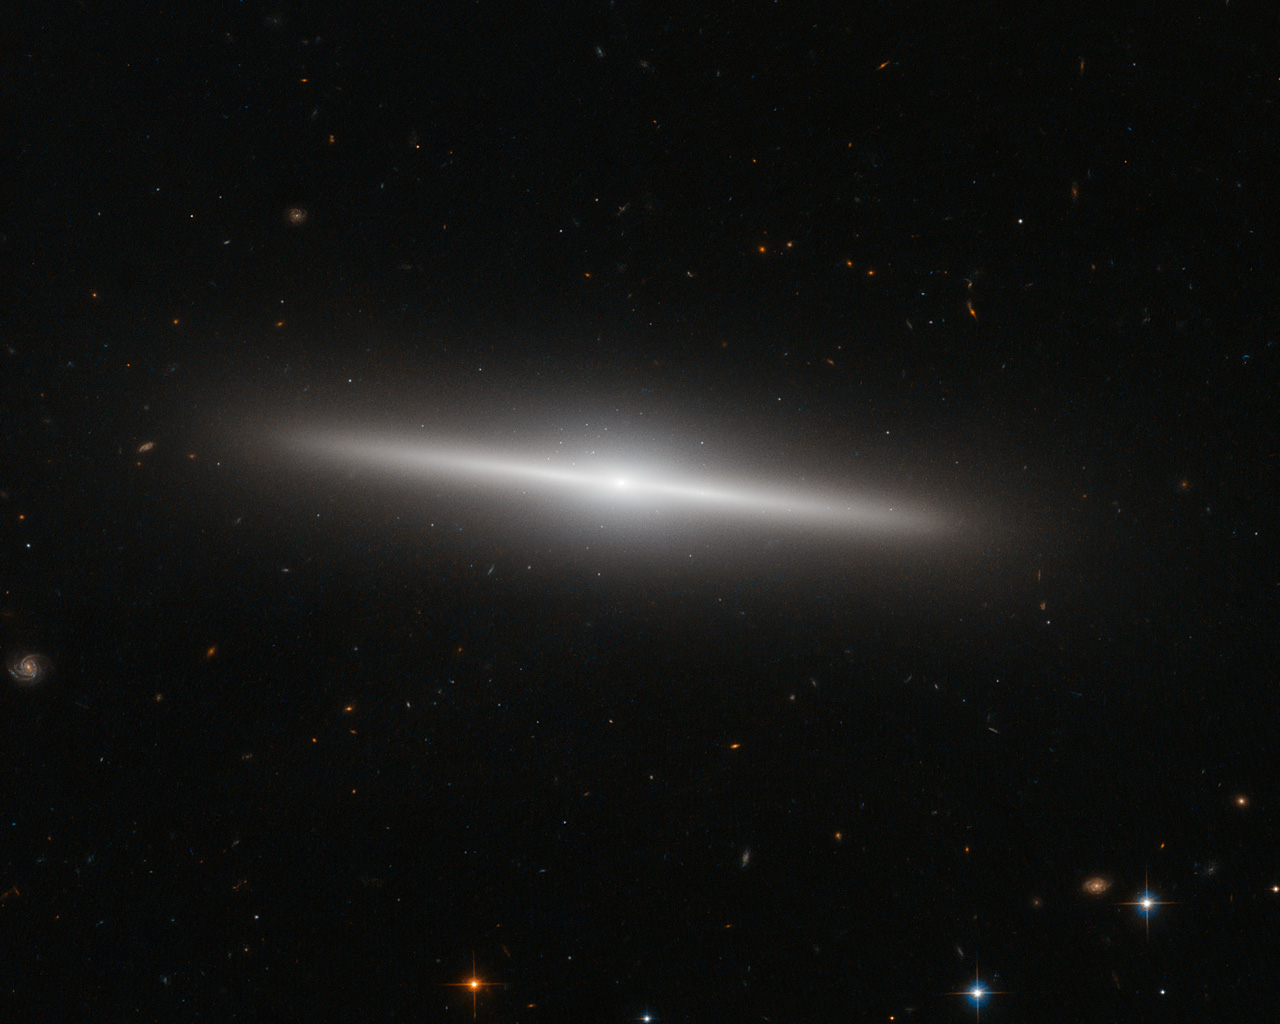 The beautiful side of IC 335 | ESA/Hubble